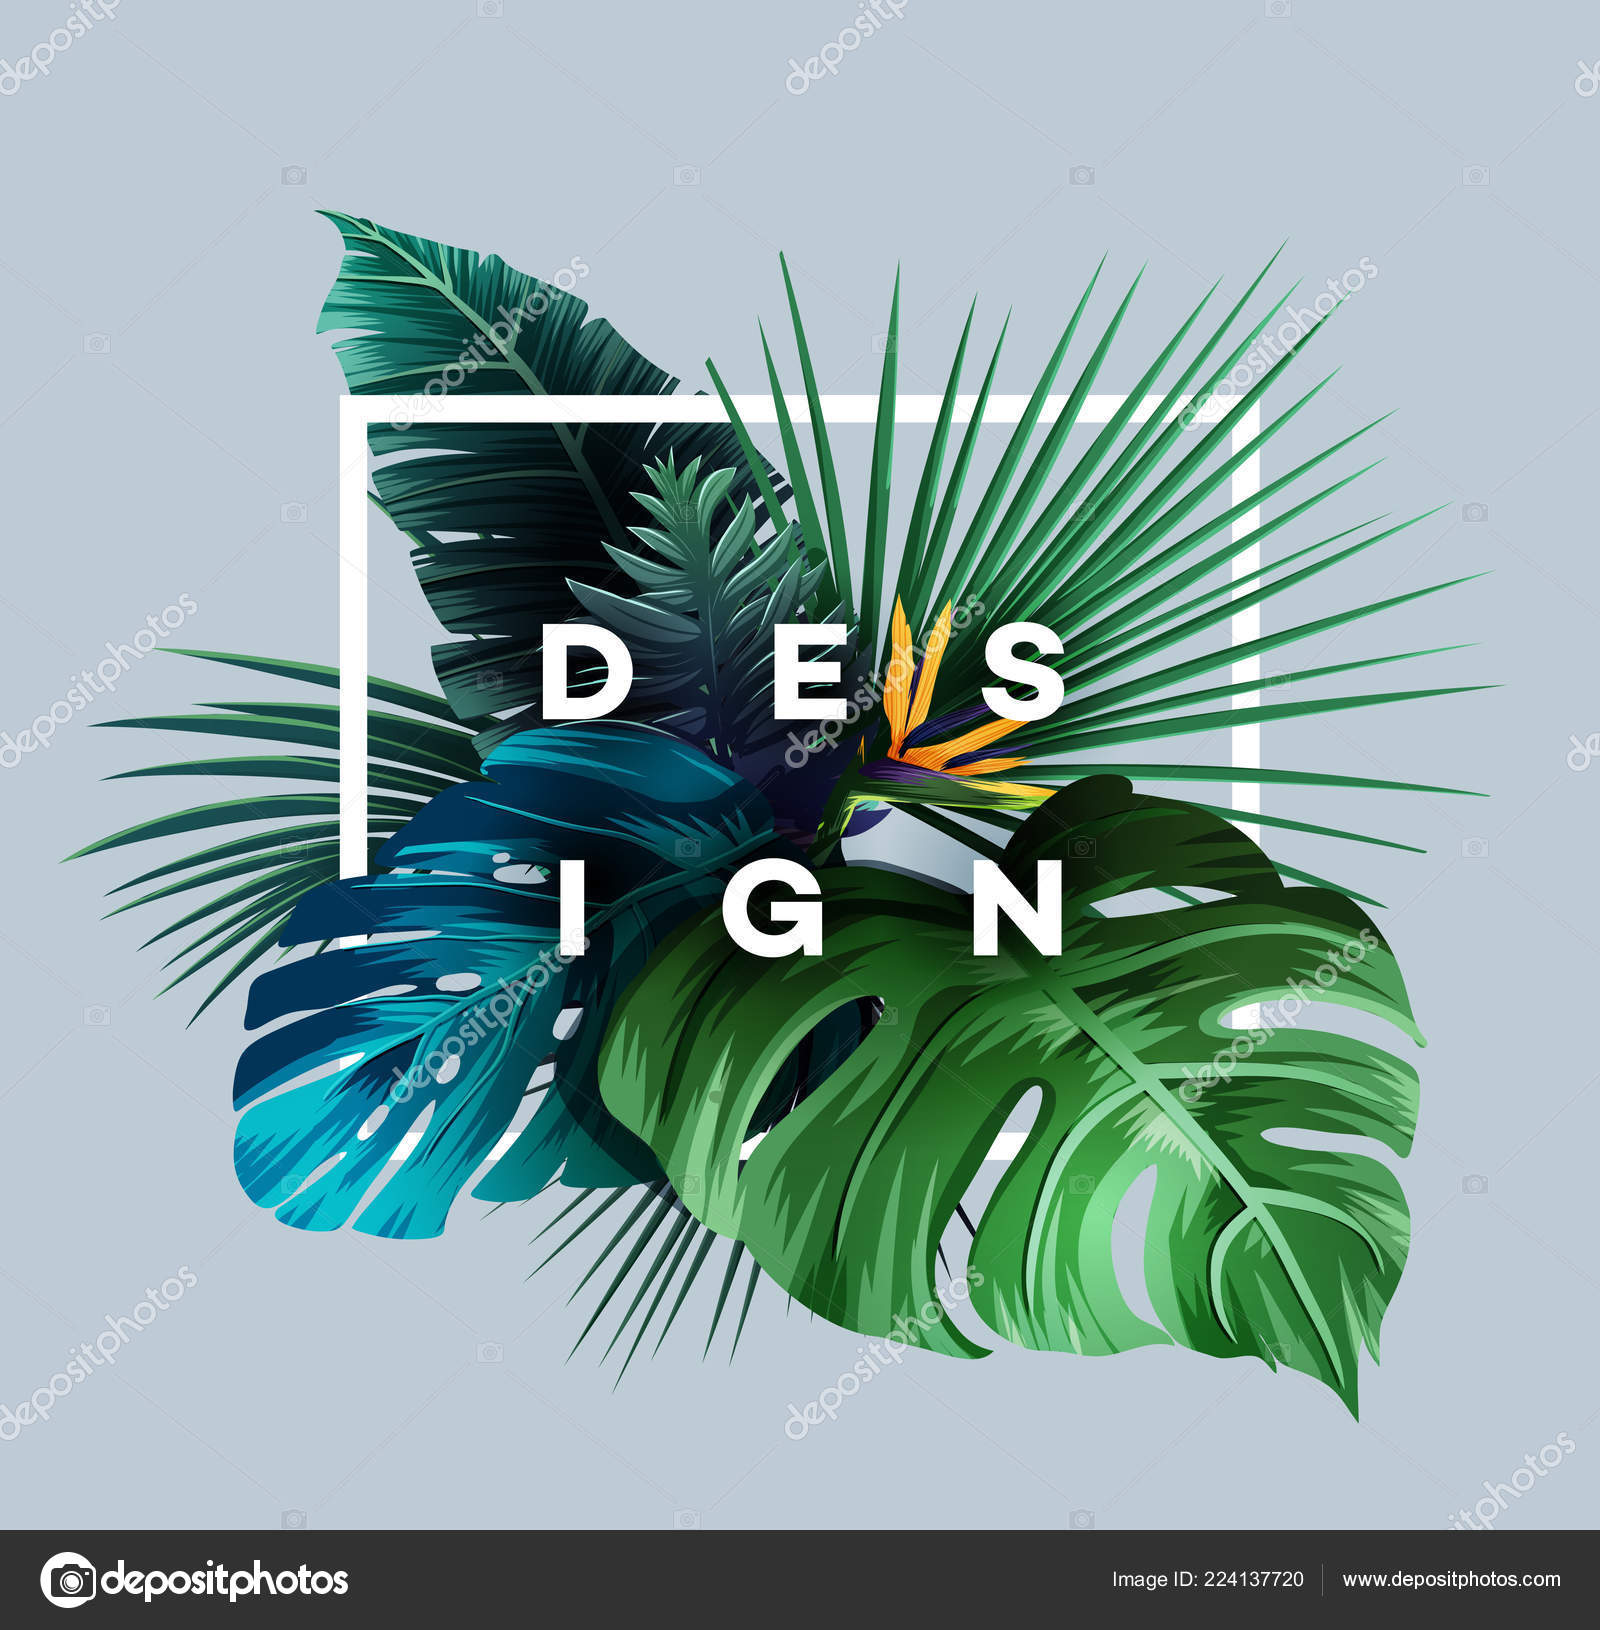 Bright Tropical Background Jungle Plants Exotic Pattern Palm Leaves Vector Stock Vector C Stotepic 224137720 Free vector drawn tropical fruits. https depositphotos com 224137720 stock illustration bright tropical background jungle plants html